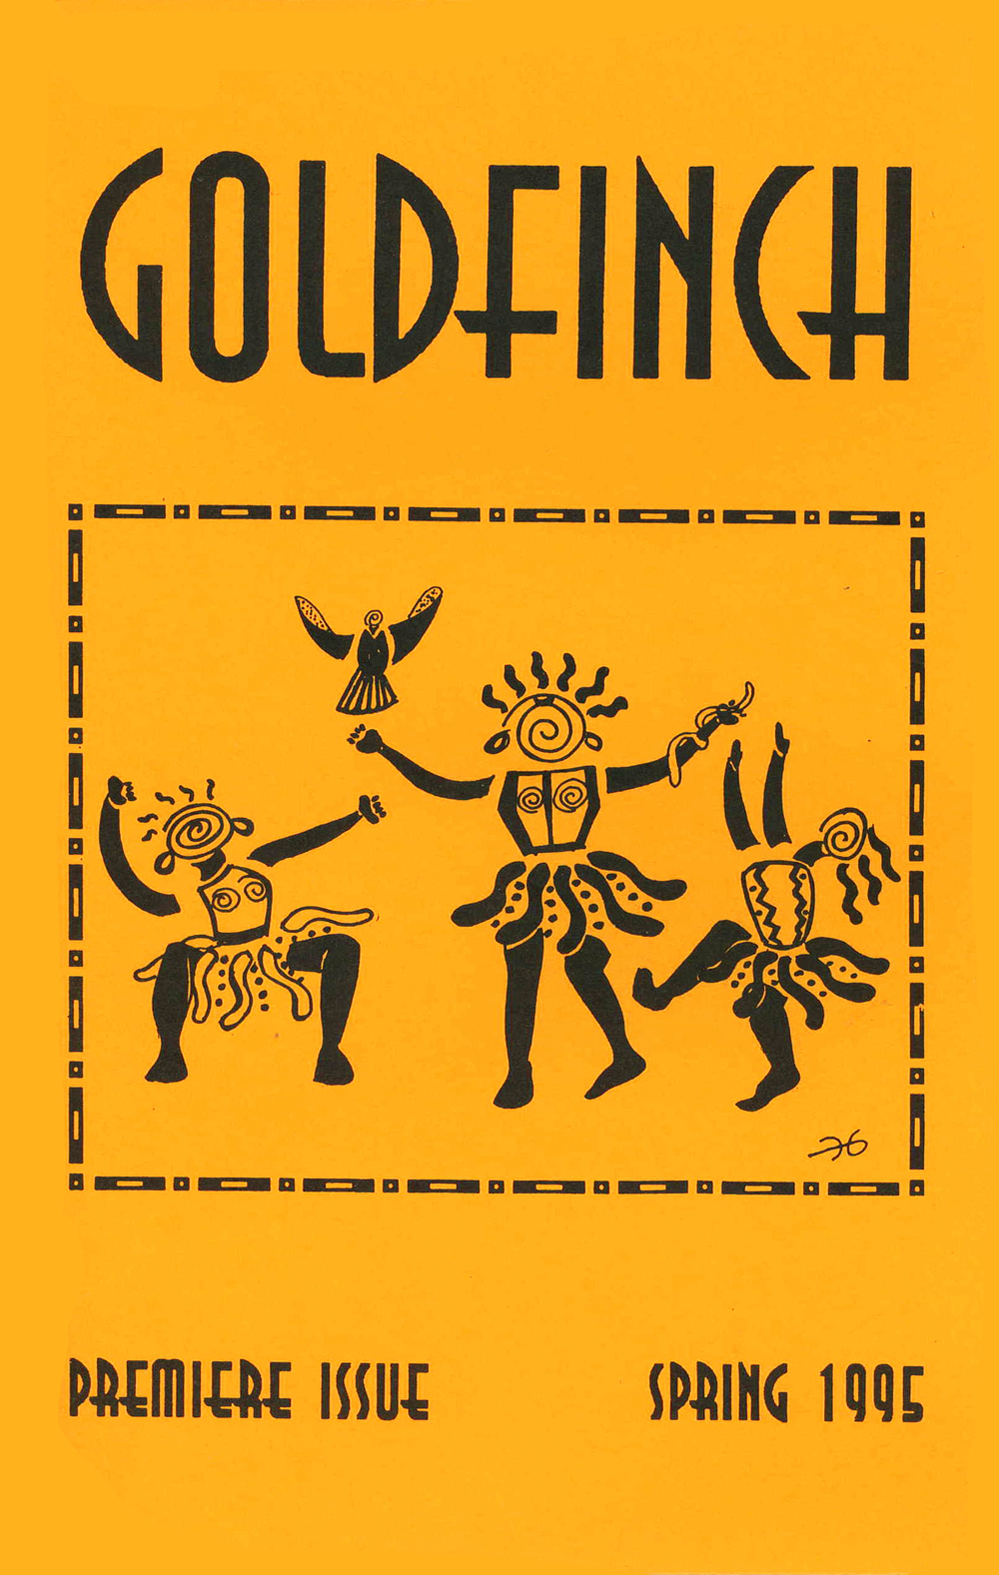 Goldfinch, Vol. 1, 1995